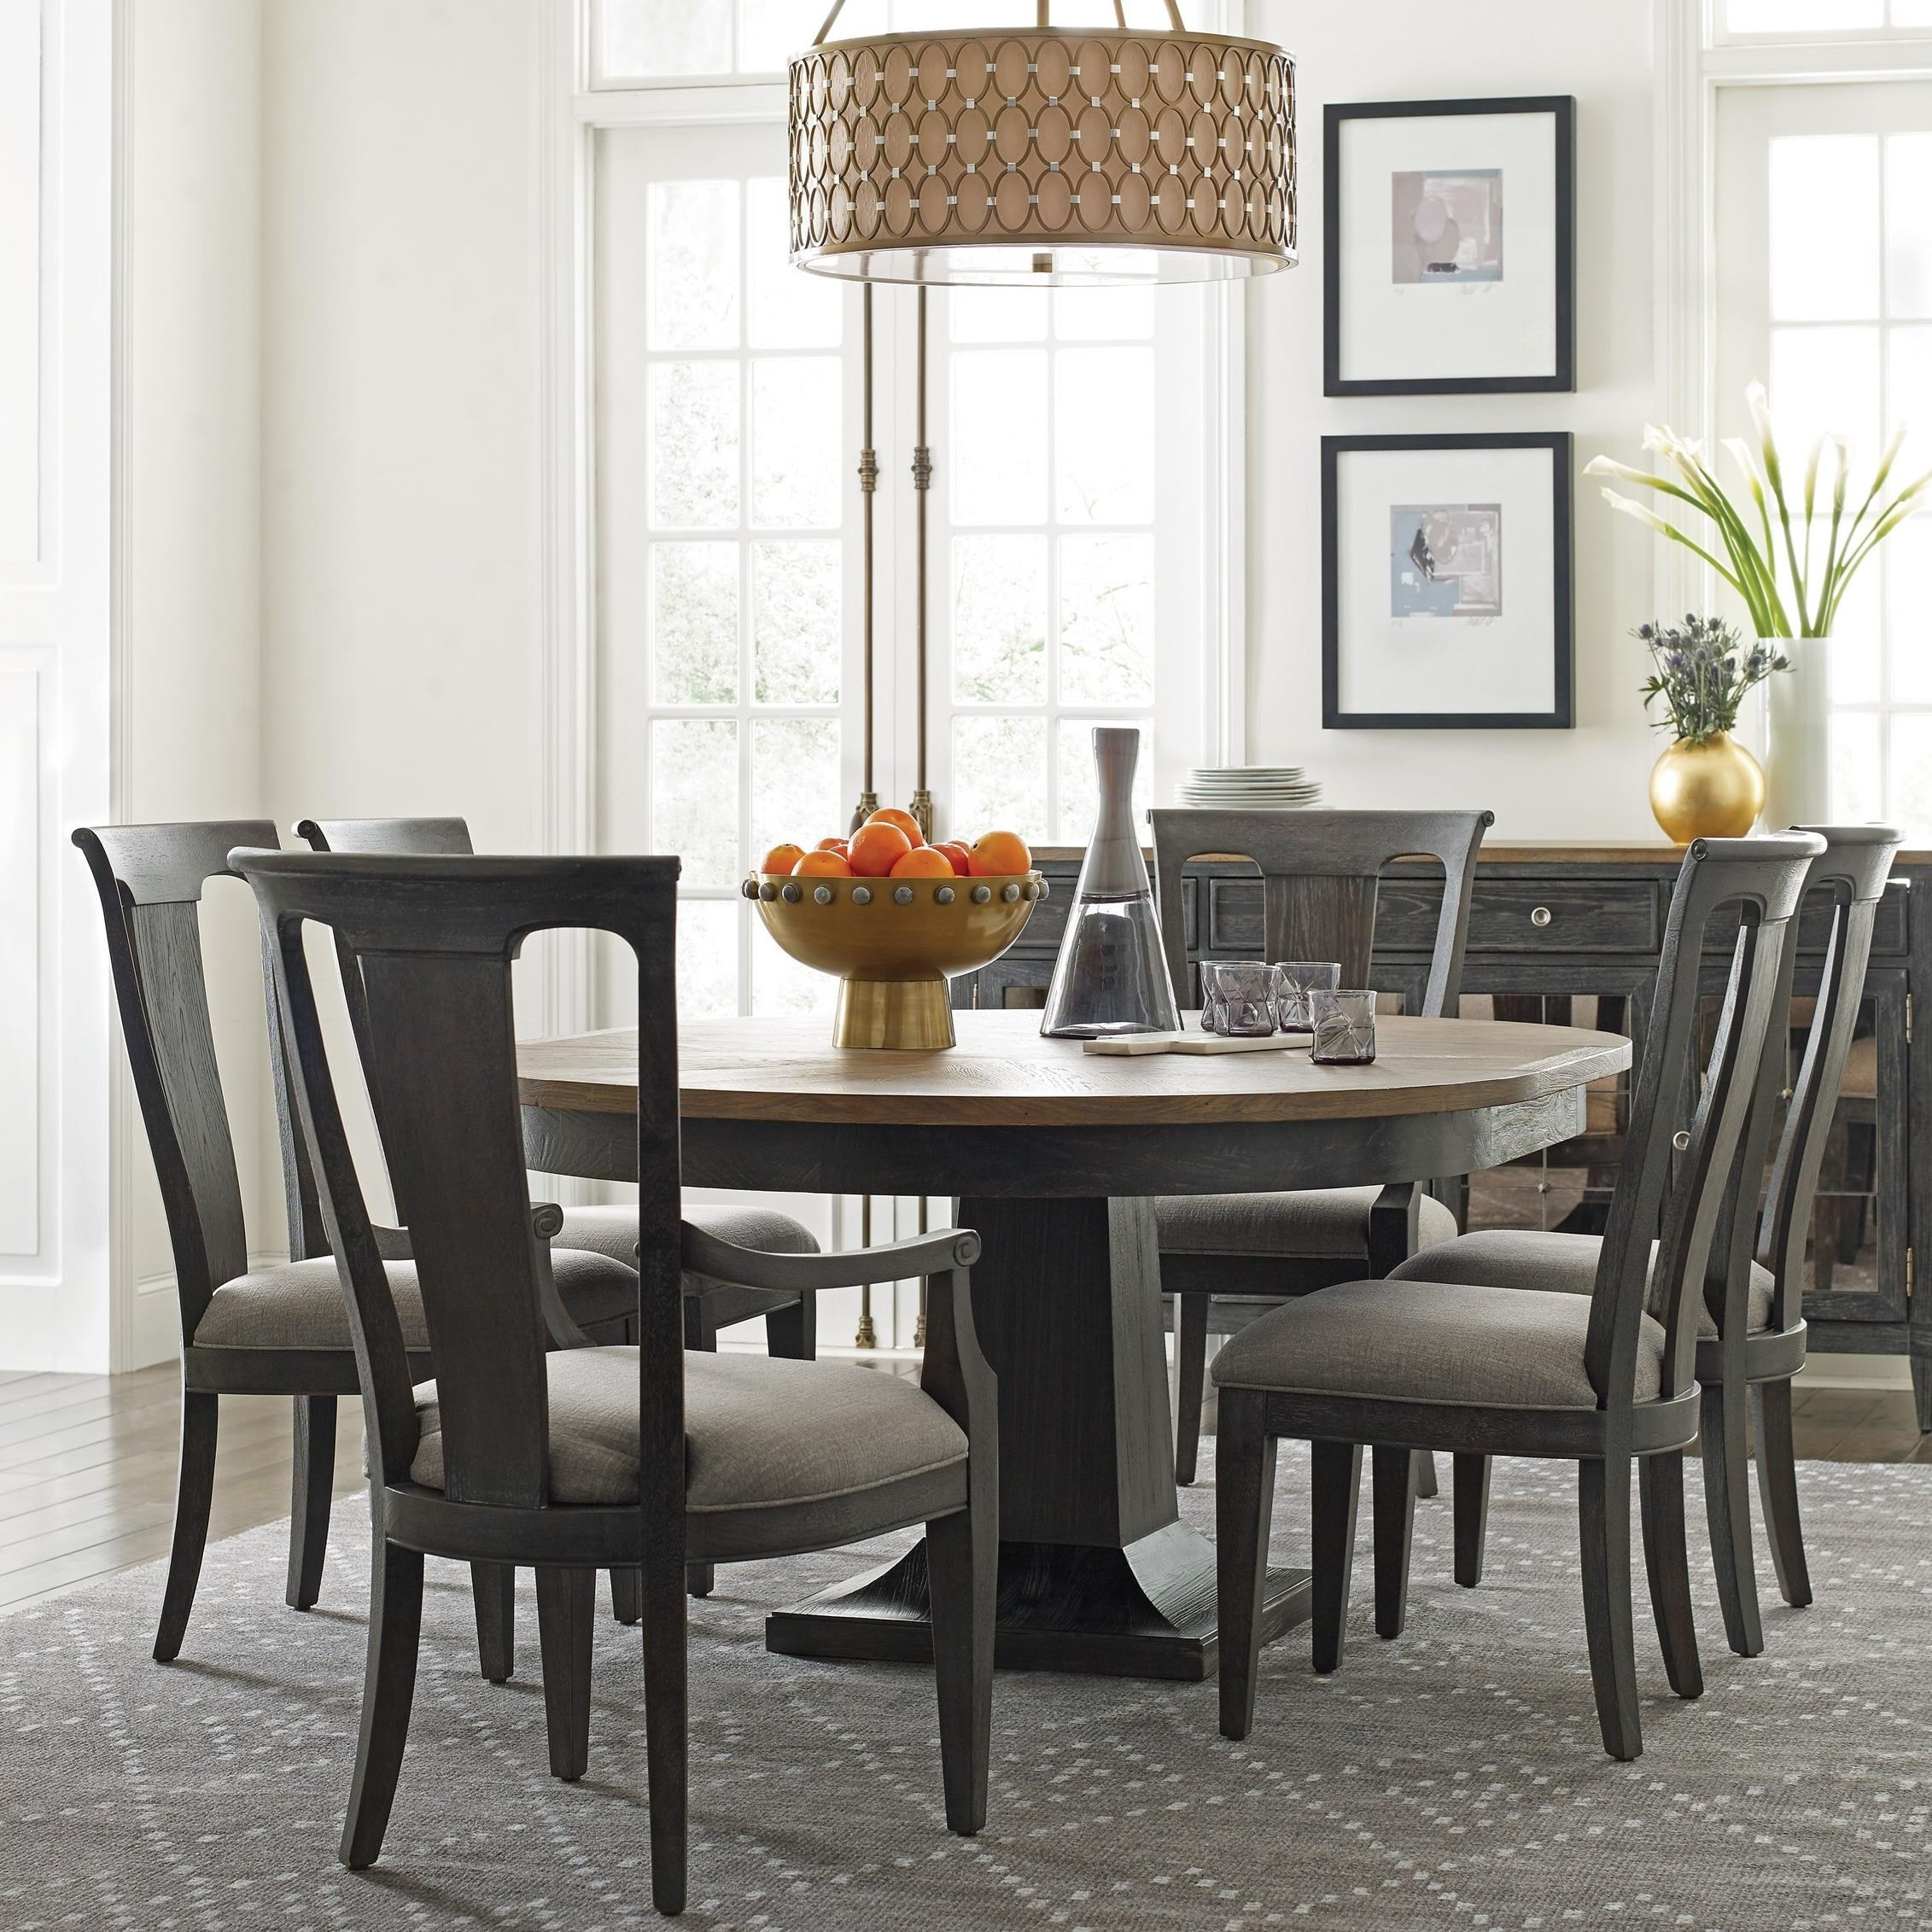 Ardennes Dining Table and Chair Set  by American Drew at Stoney Creek Furniture